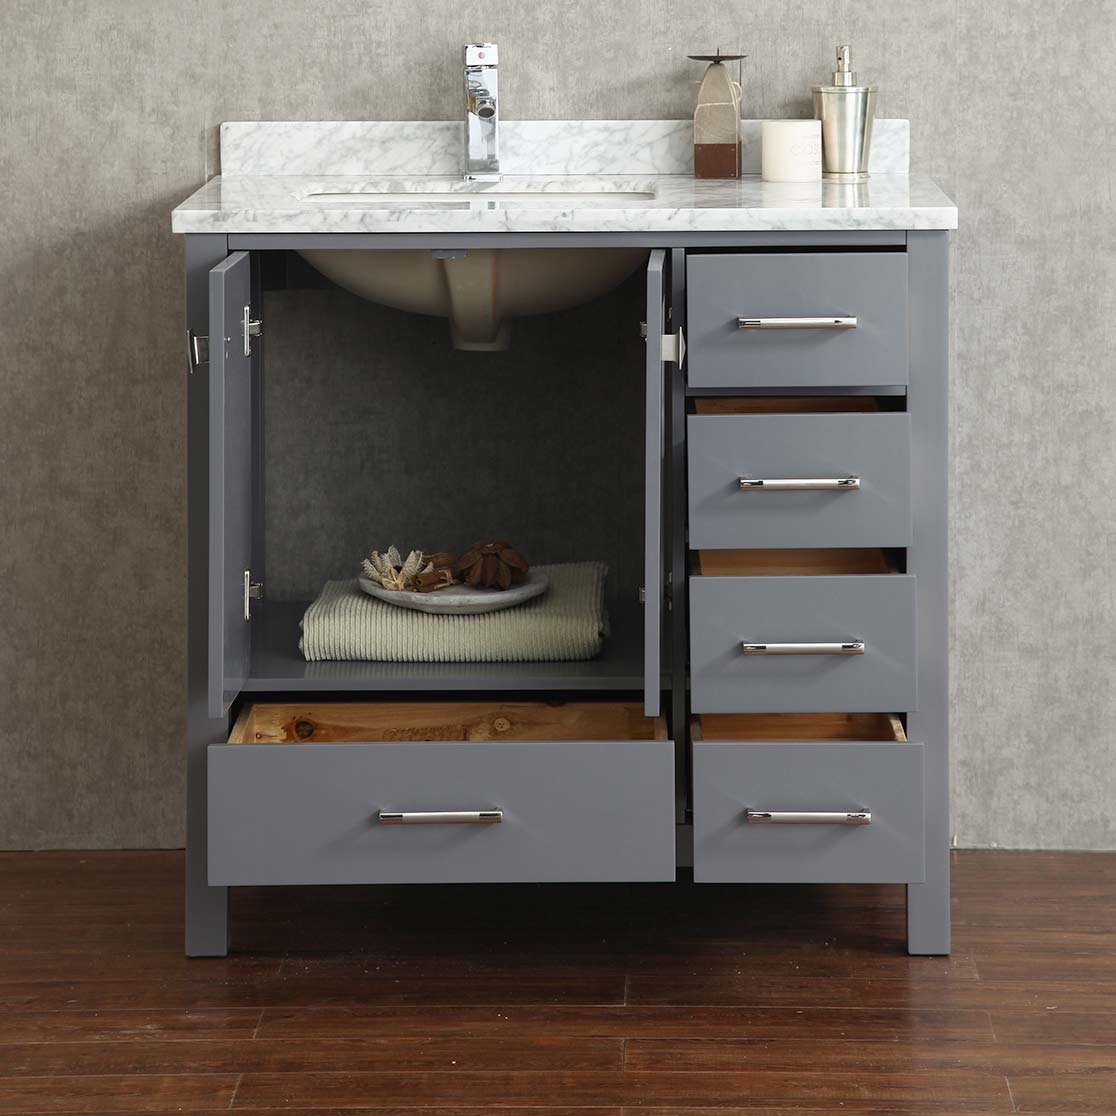 Buy Vincent 36 Inch Solid Wood Single Bathroom Vanity In Charcoal Grey Hm 13001 36 Wmsq Cg